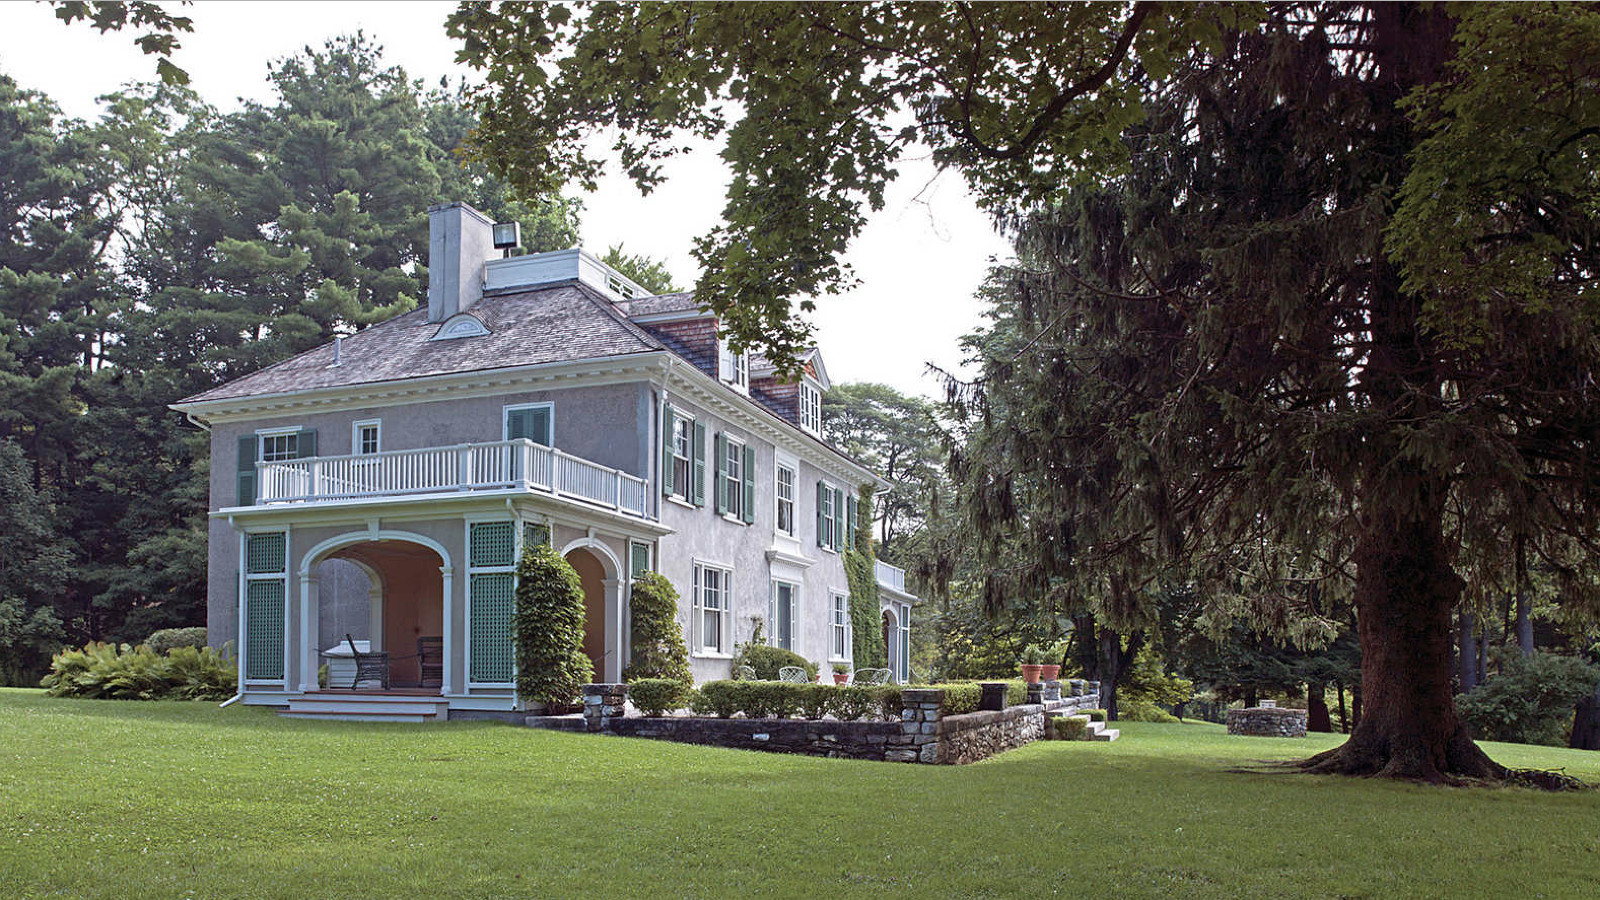 photo of Chester's mansion, taken on a sunny day in summer, surrounded by immaculately kept lawn, gardens, and towering evergreen trees.